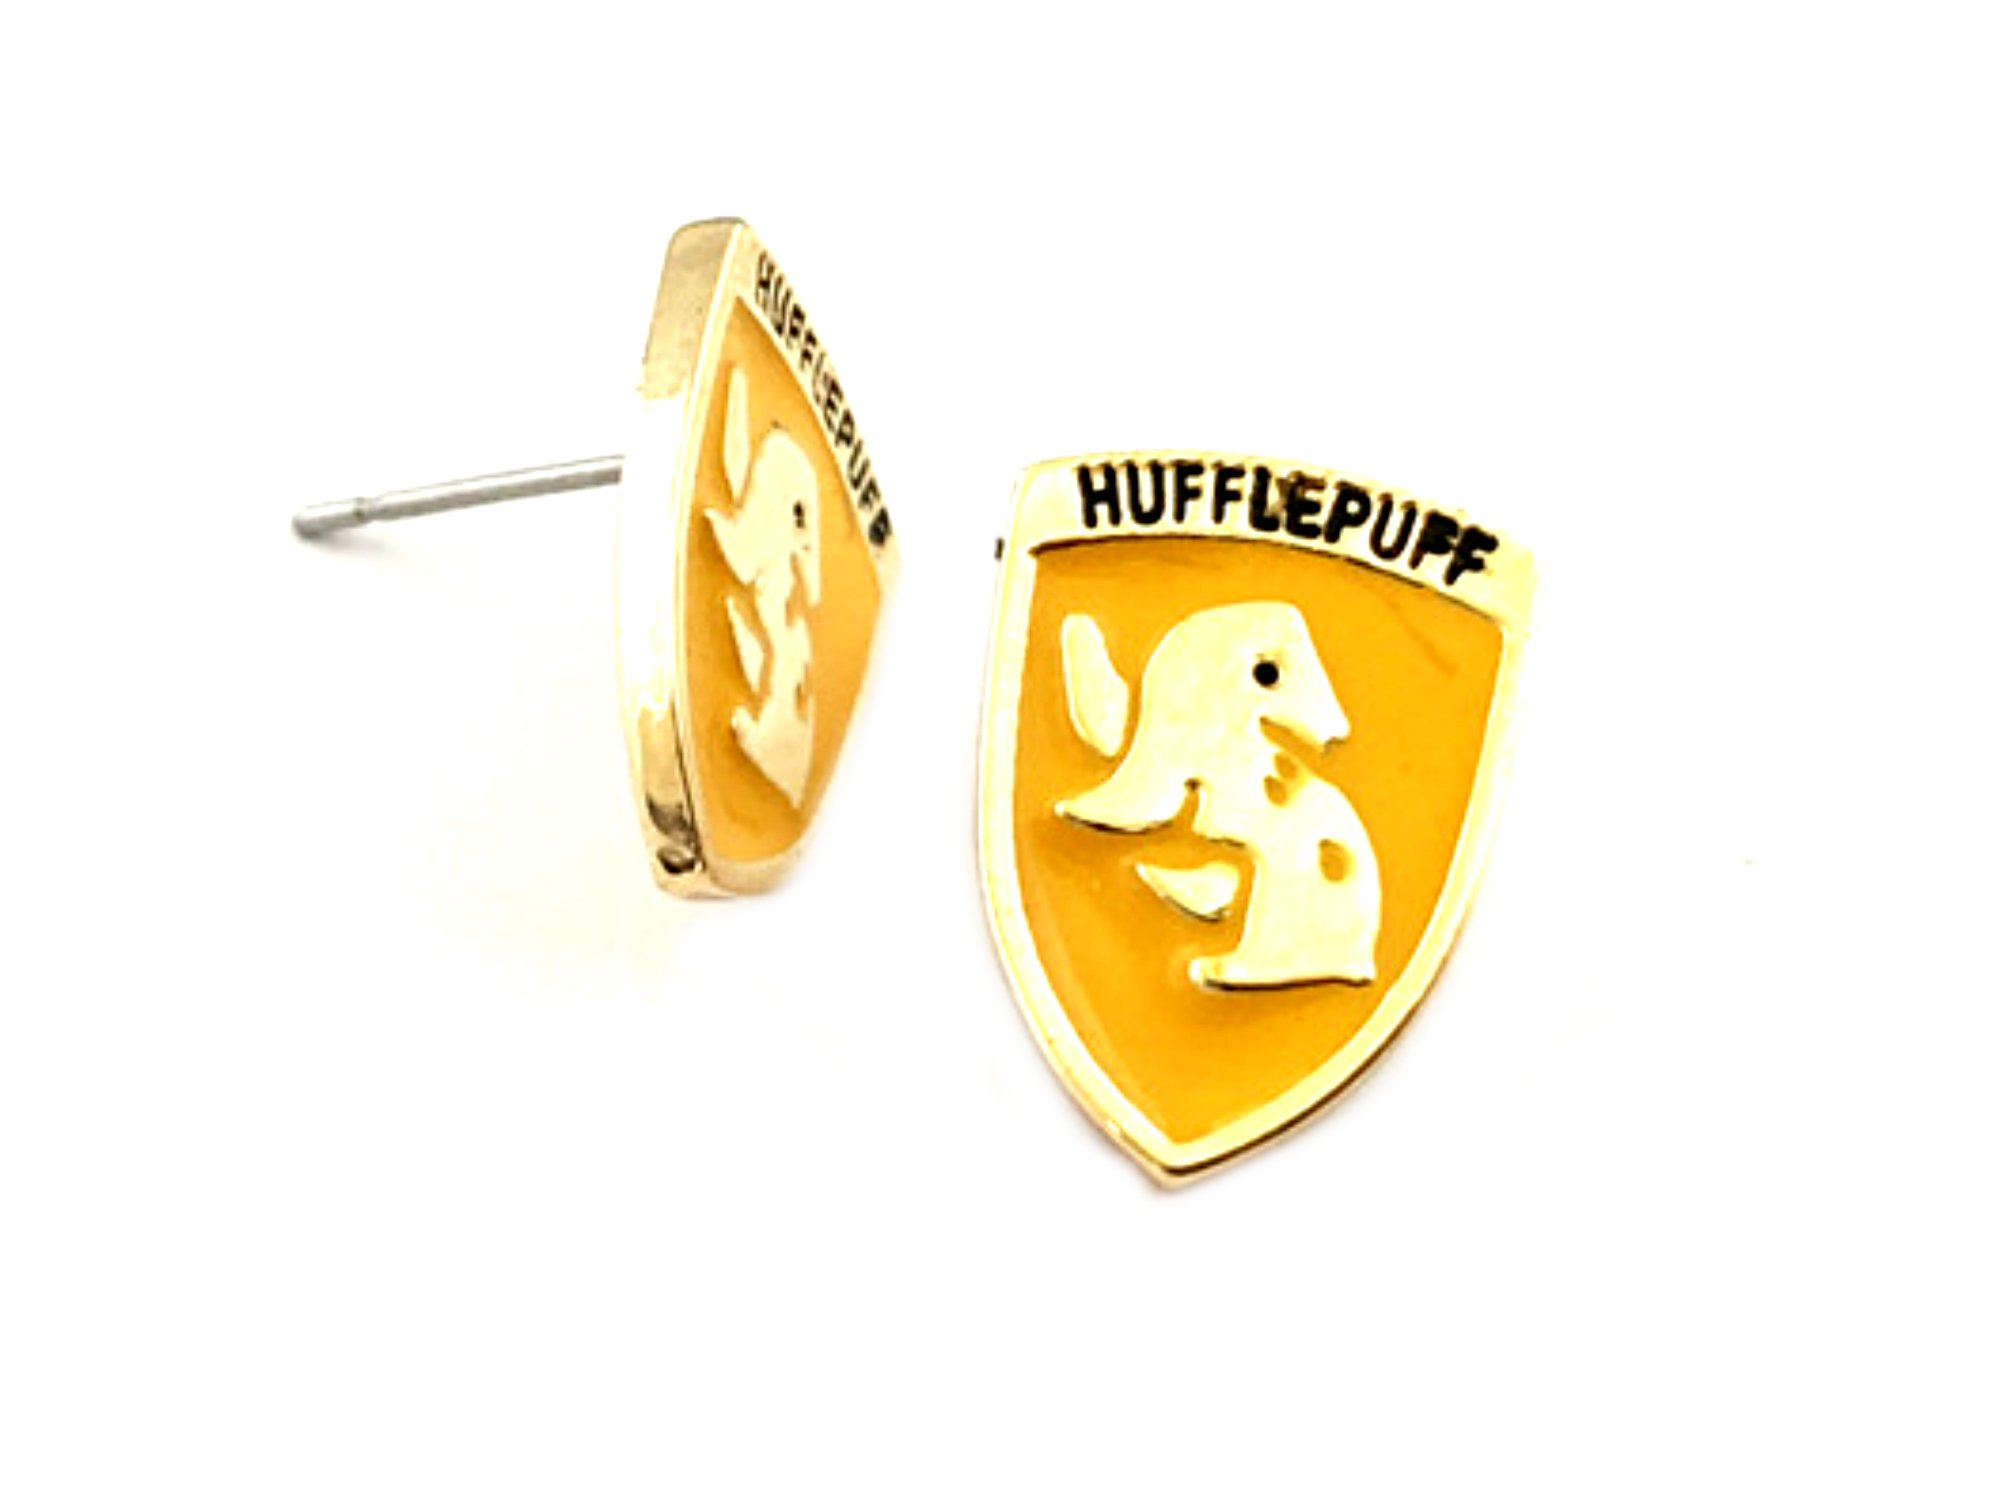 Harry Potter Post Stud Premium Quality Silvertone Earrings Golden Snitch Gryffindor Slytherin Ravenclaw Hufflepuff Crest